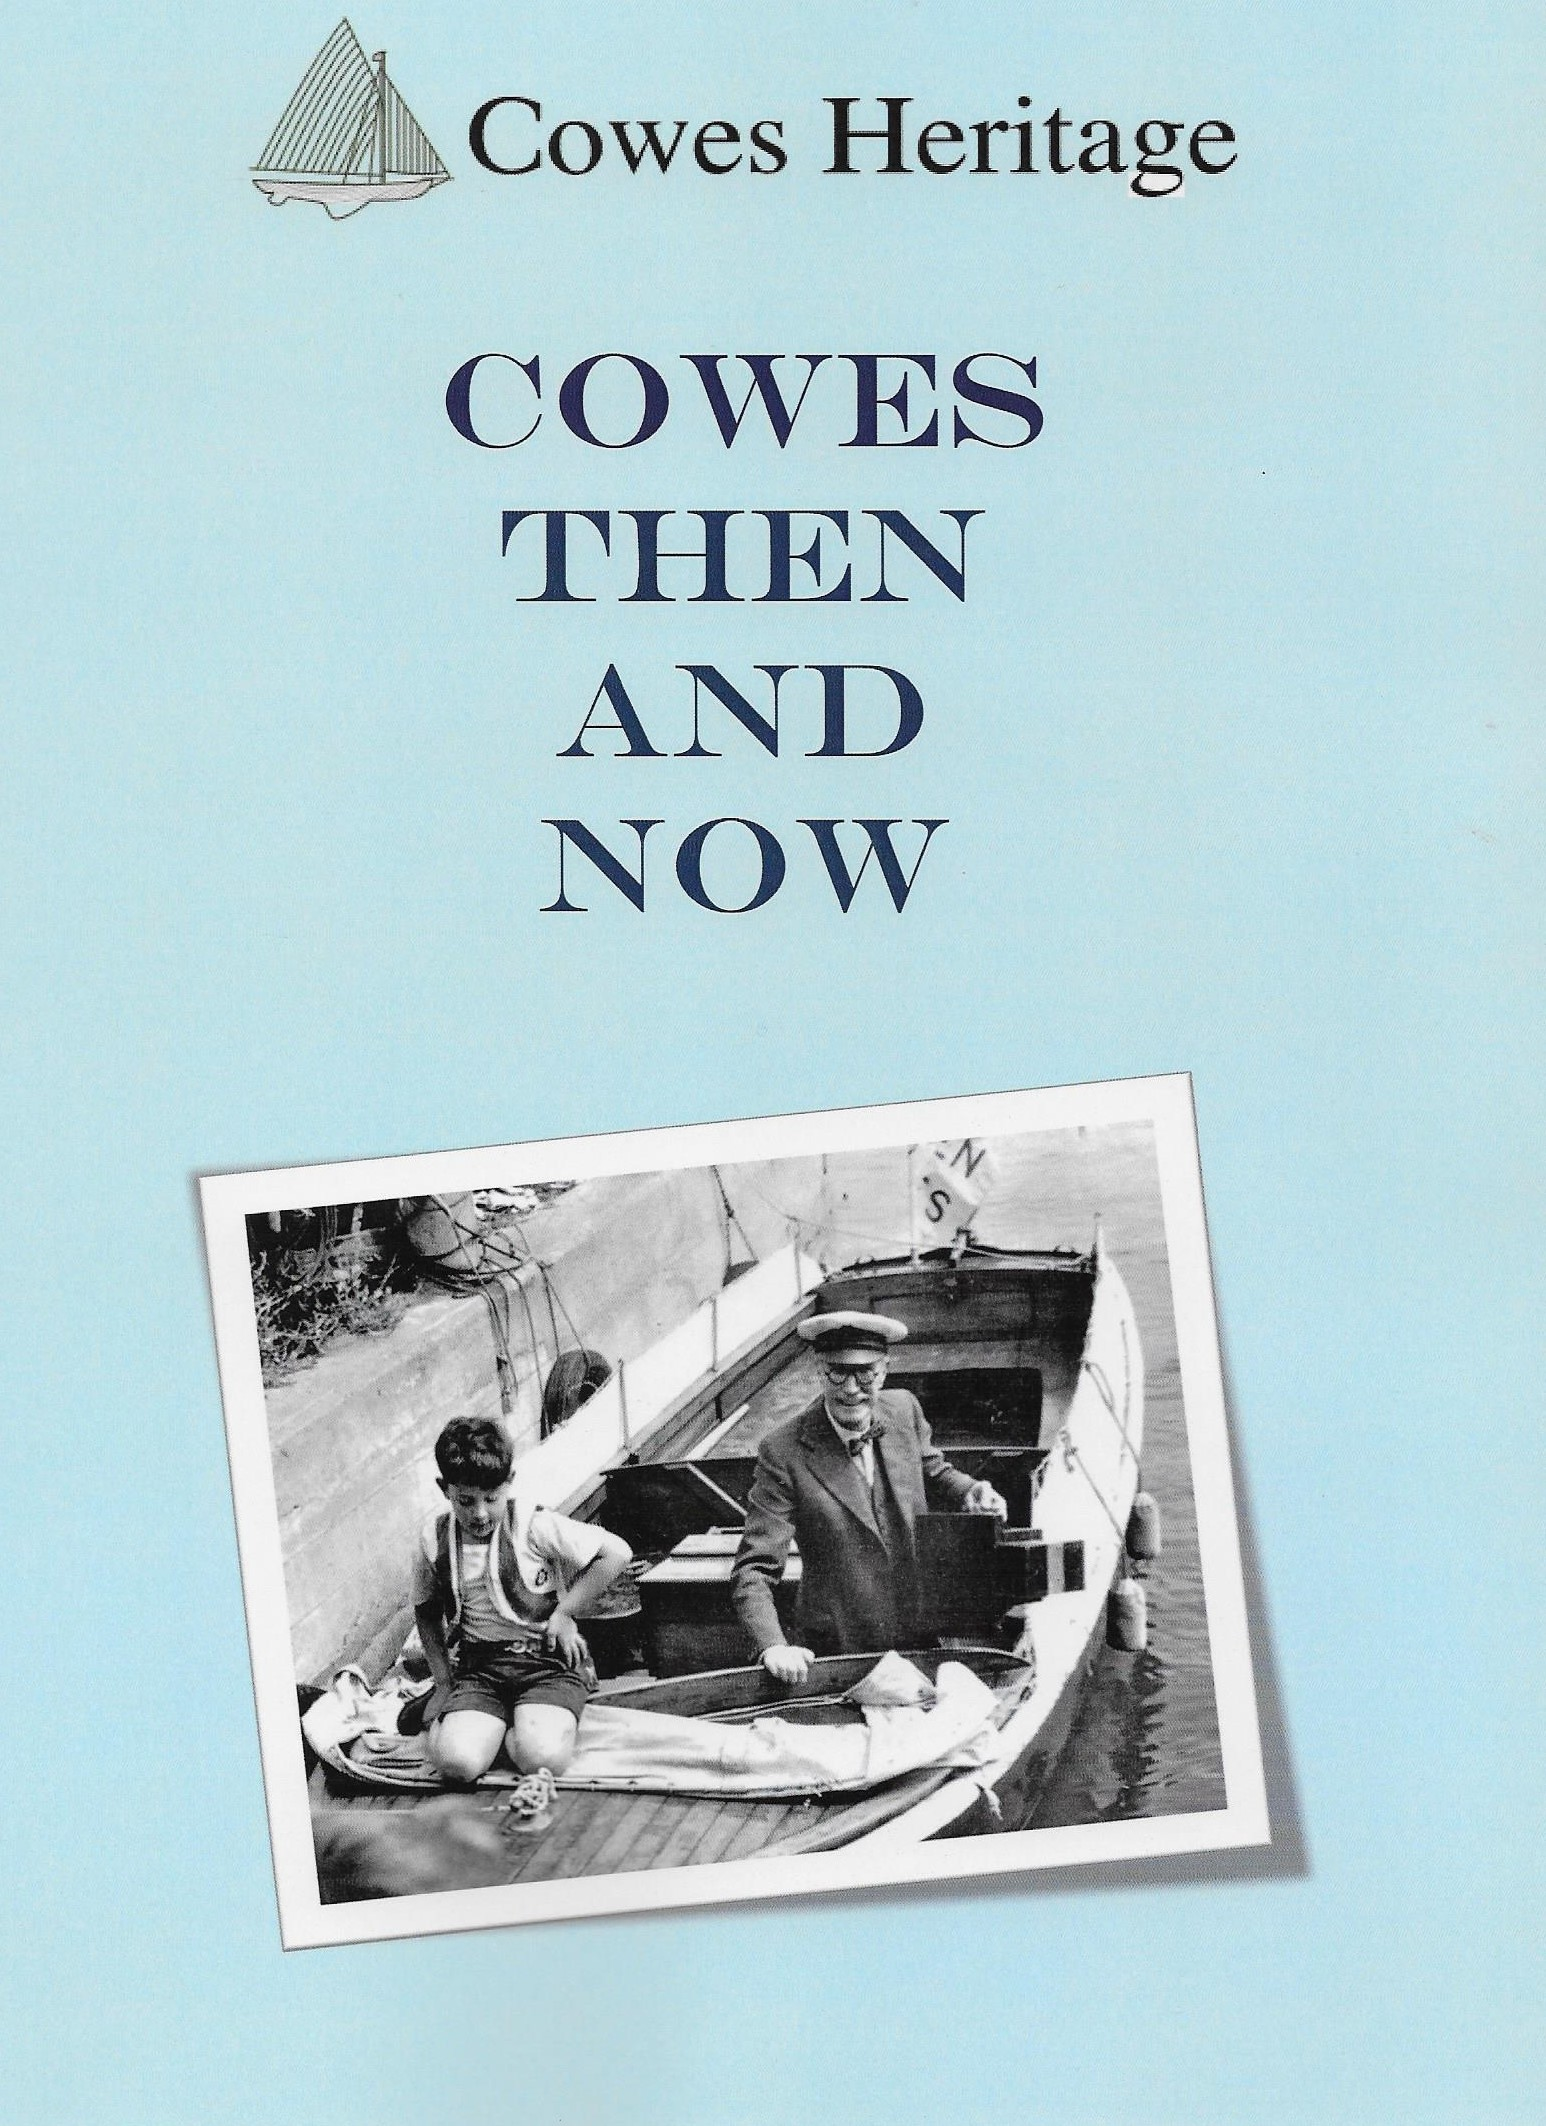 Then & now front cover.jpeg